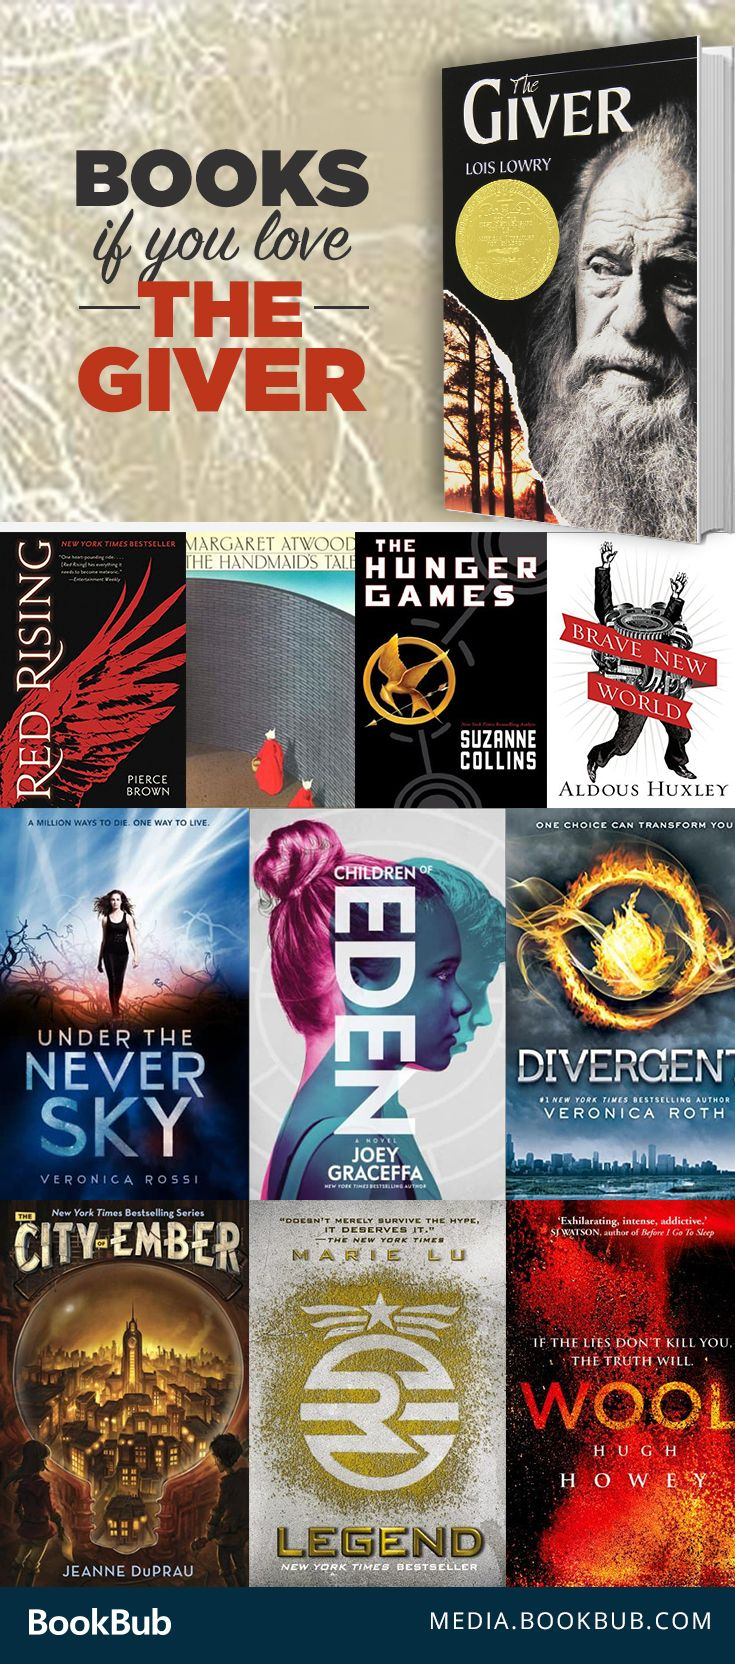 19 books to read if you love The Giver. These are great books for teens, both boys and girls, or fans of dystopian fiction. We couldn't leave The Hunger Games off this reading list!